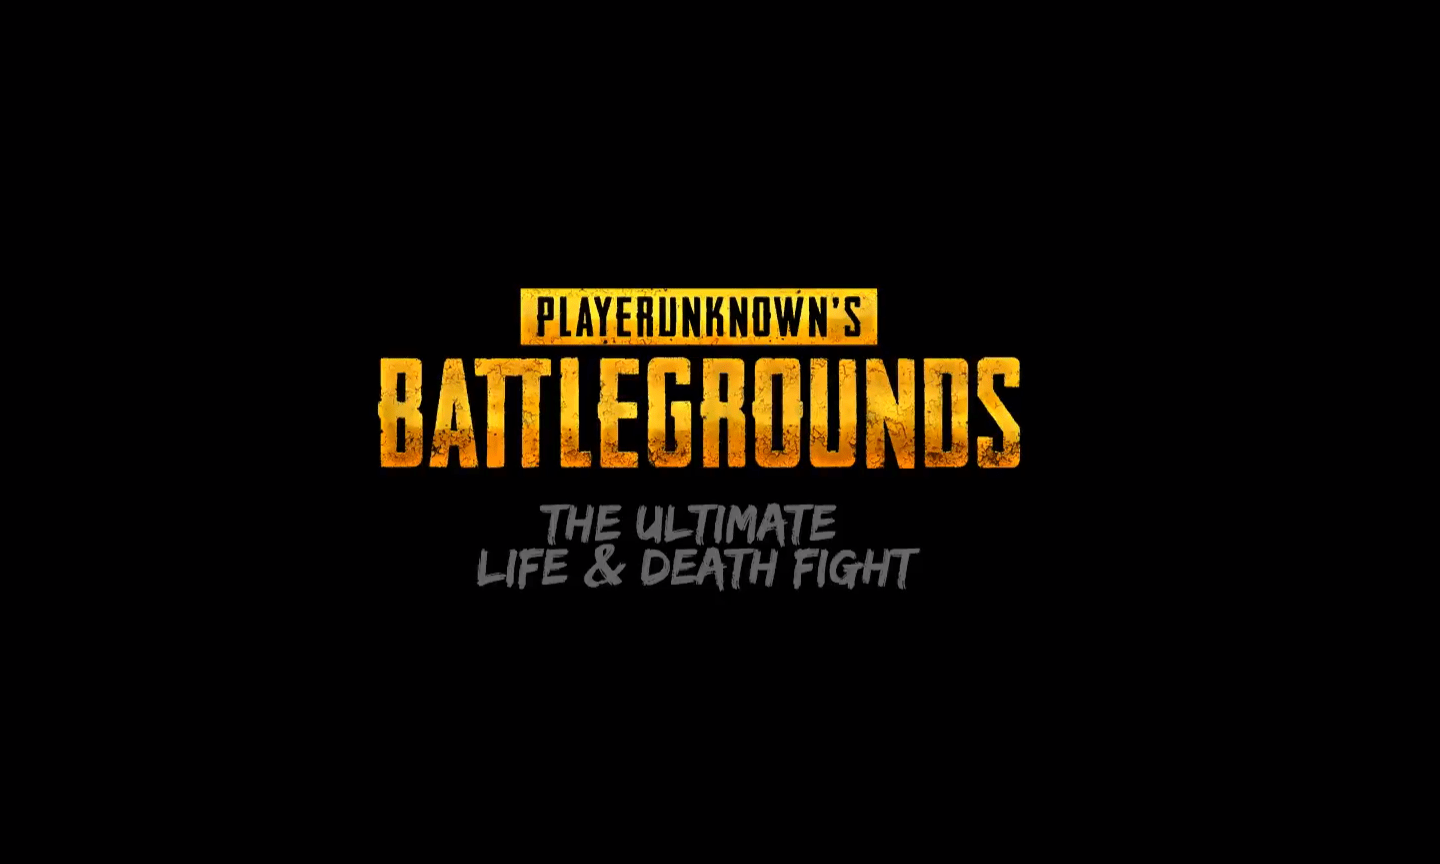 First Look at PLAYERUNKNOWN's Battlegrounds